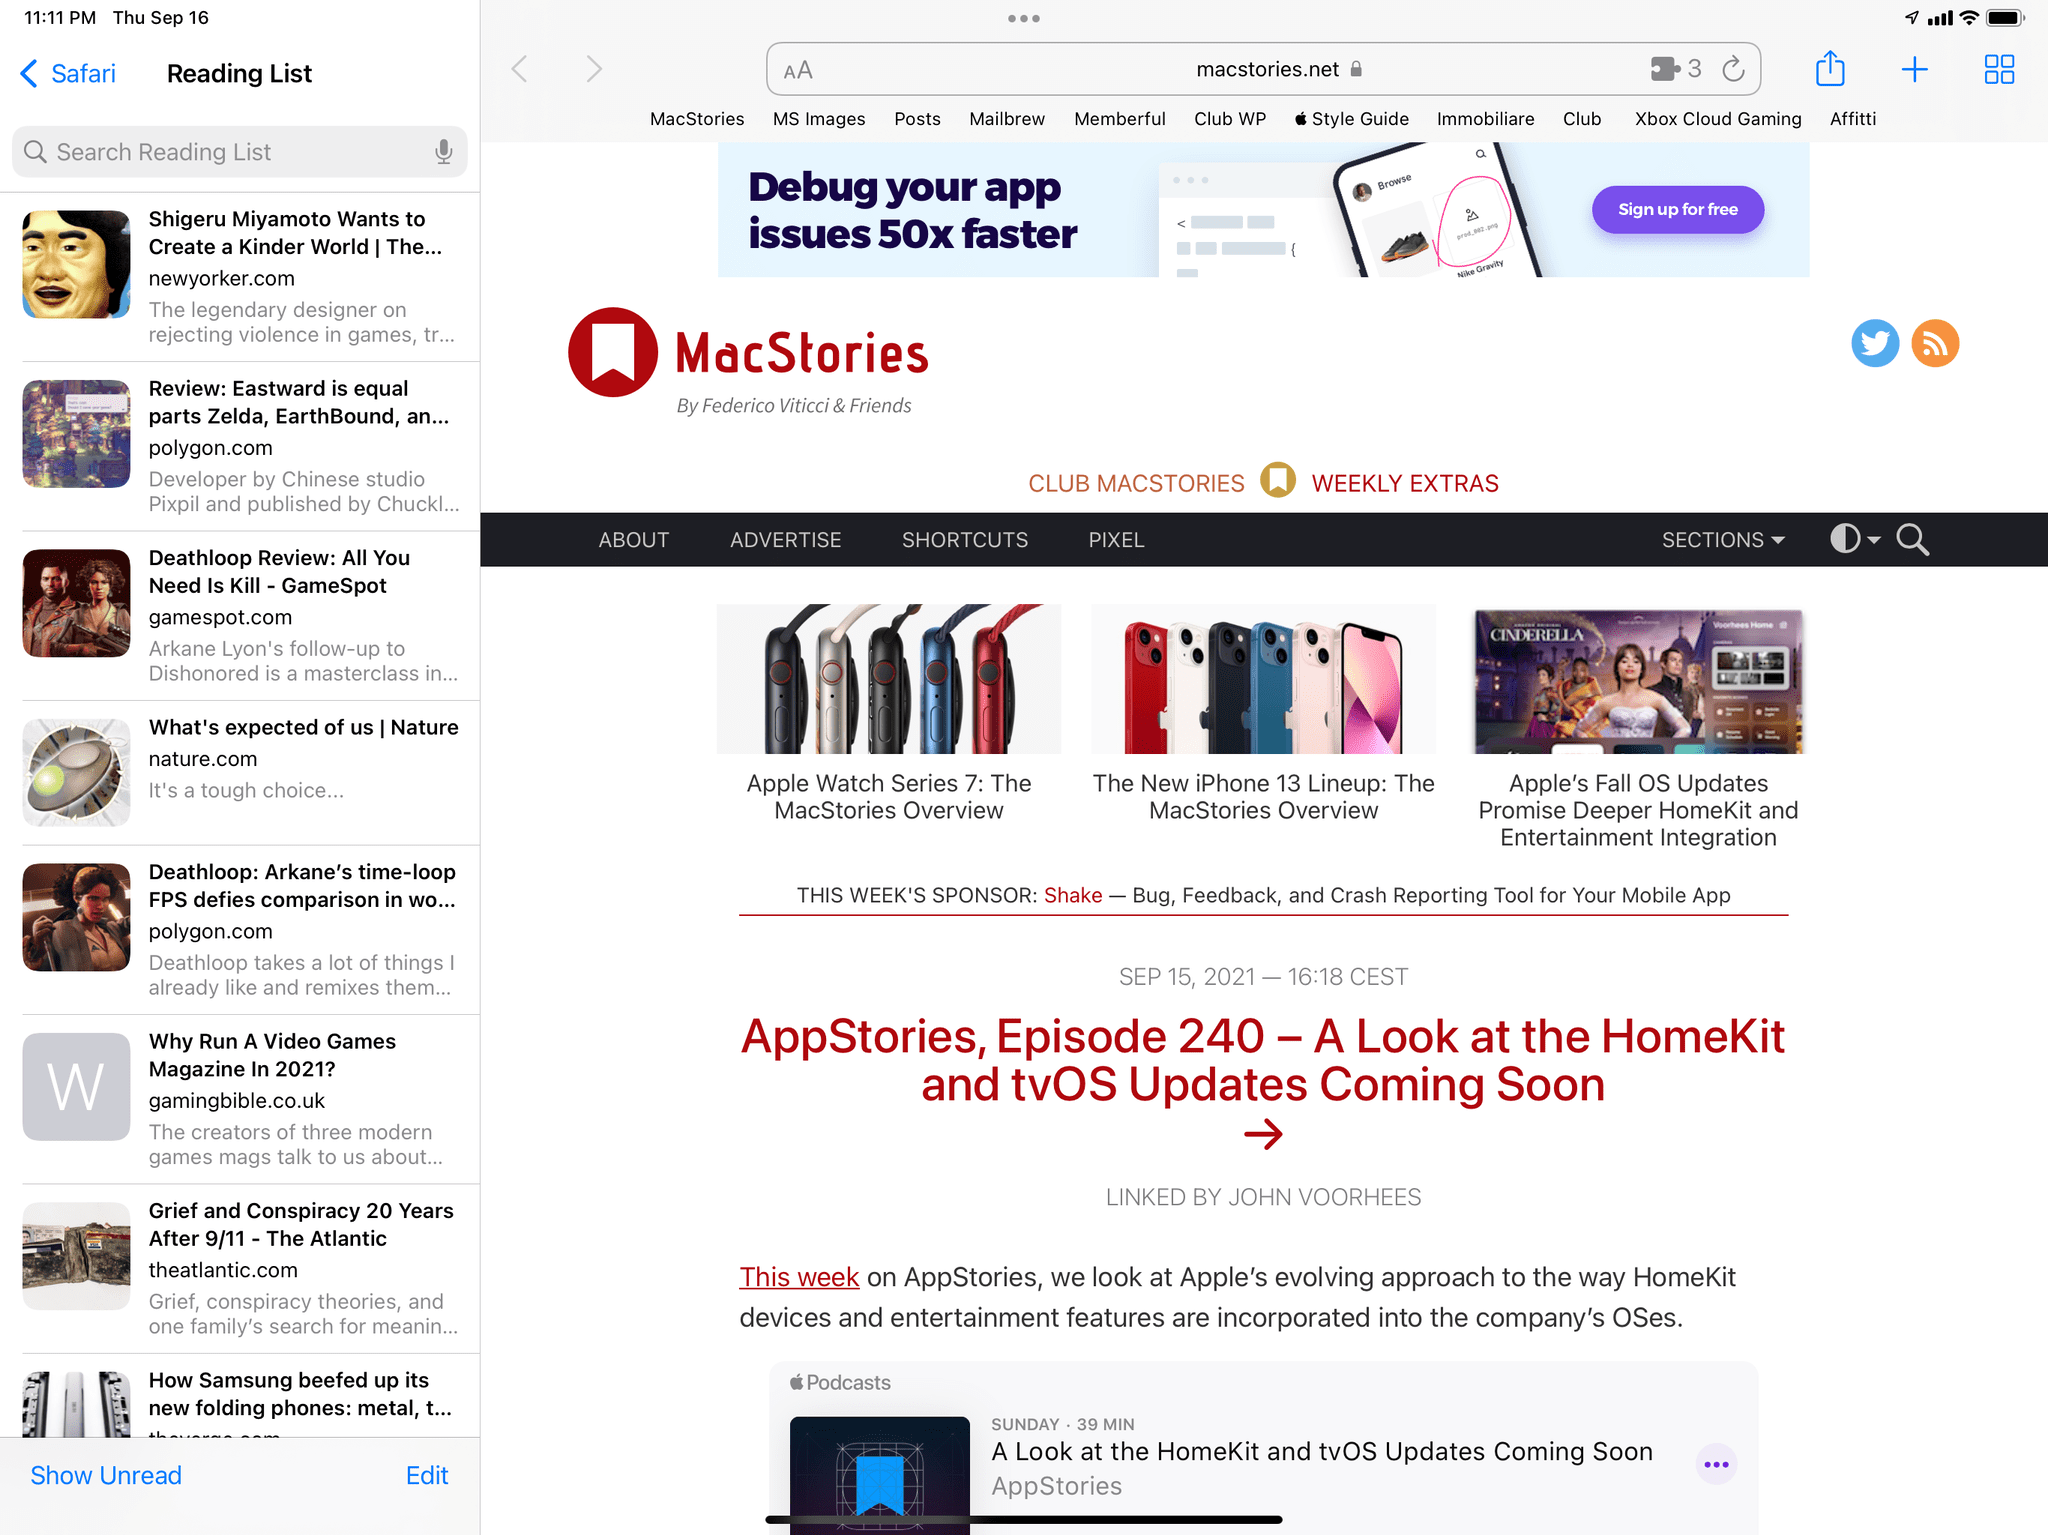 The new sidebar for Reading List in iPadOS 15.